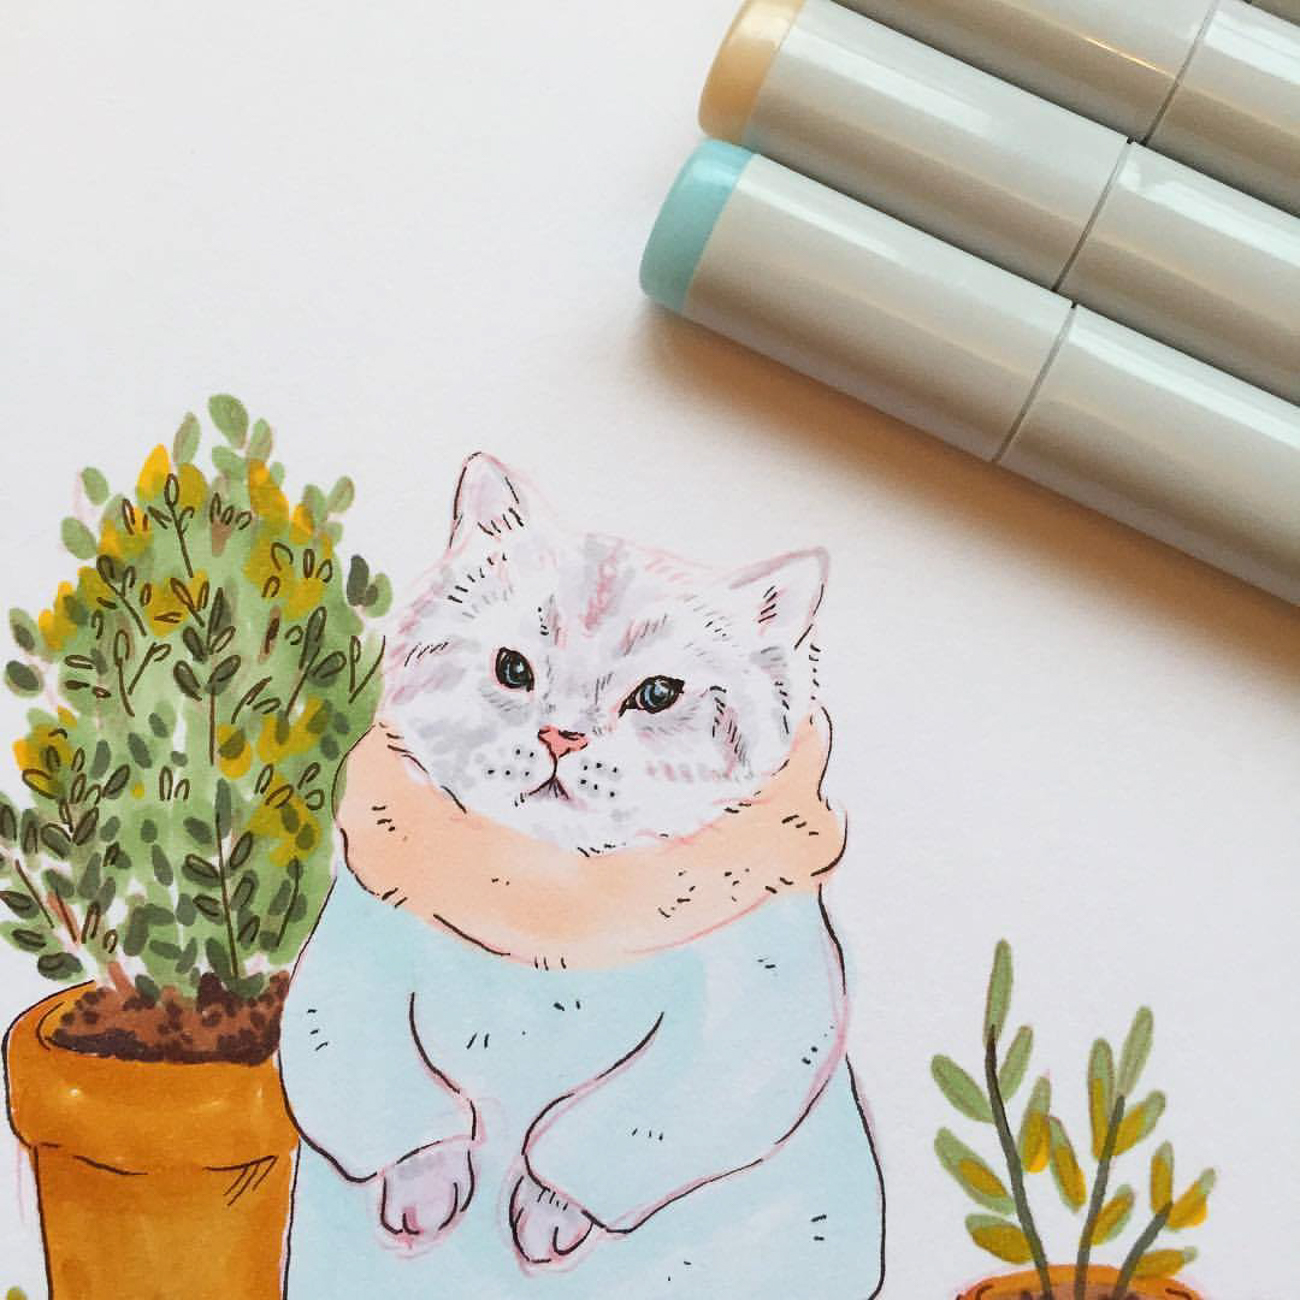 Sammie Clark Art offers storybook-esque drawings and custom pieces. You can find her work online and at BluClover in downtown Lebanon. / Image courtesy of Sammie Clark Art // Published: 1.14.18